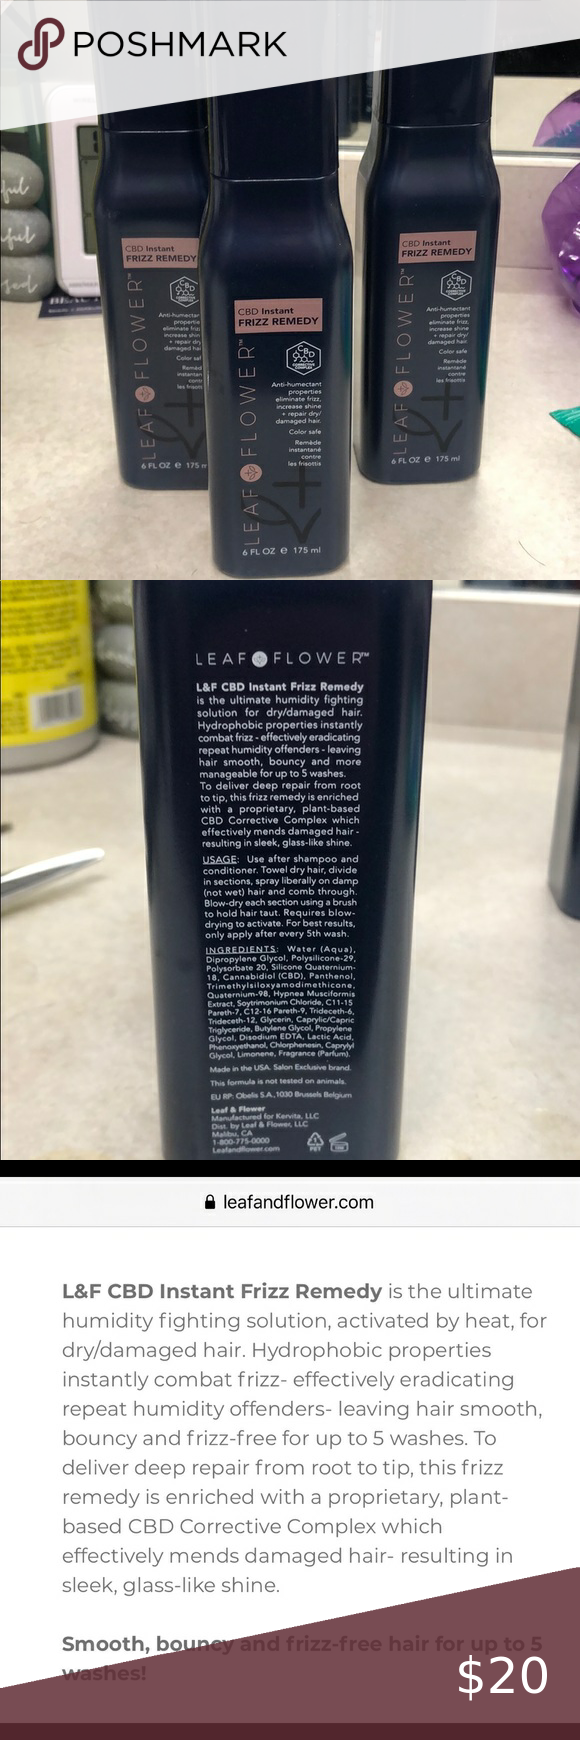 Leaf and Flower instant frizz remedy Anti humectant properties, eliminates frizz, repairs dry damage